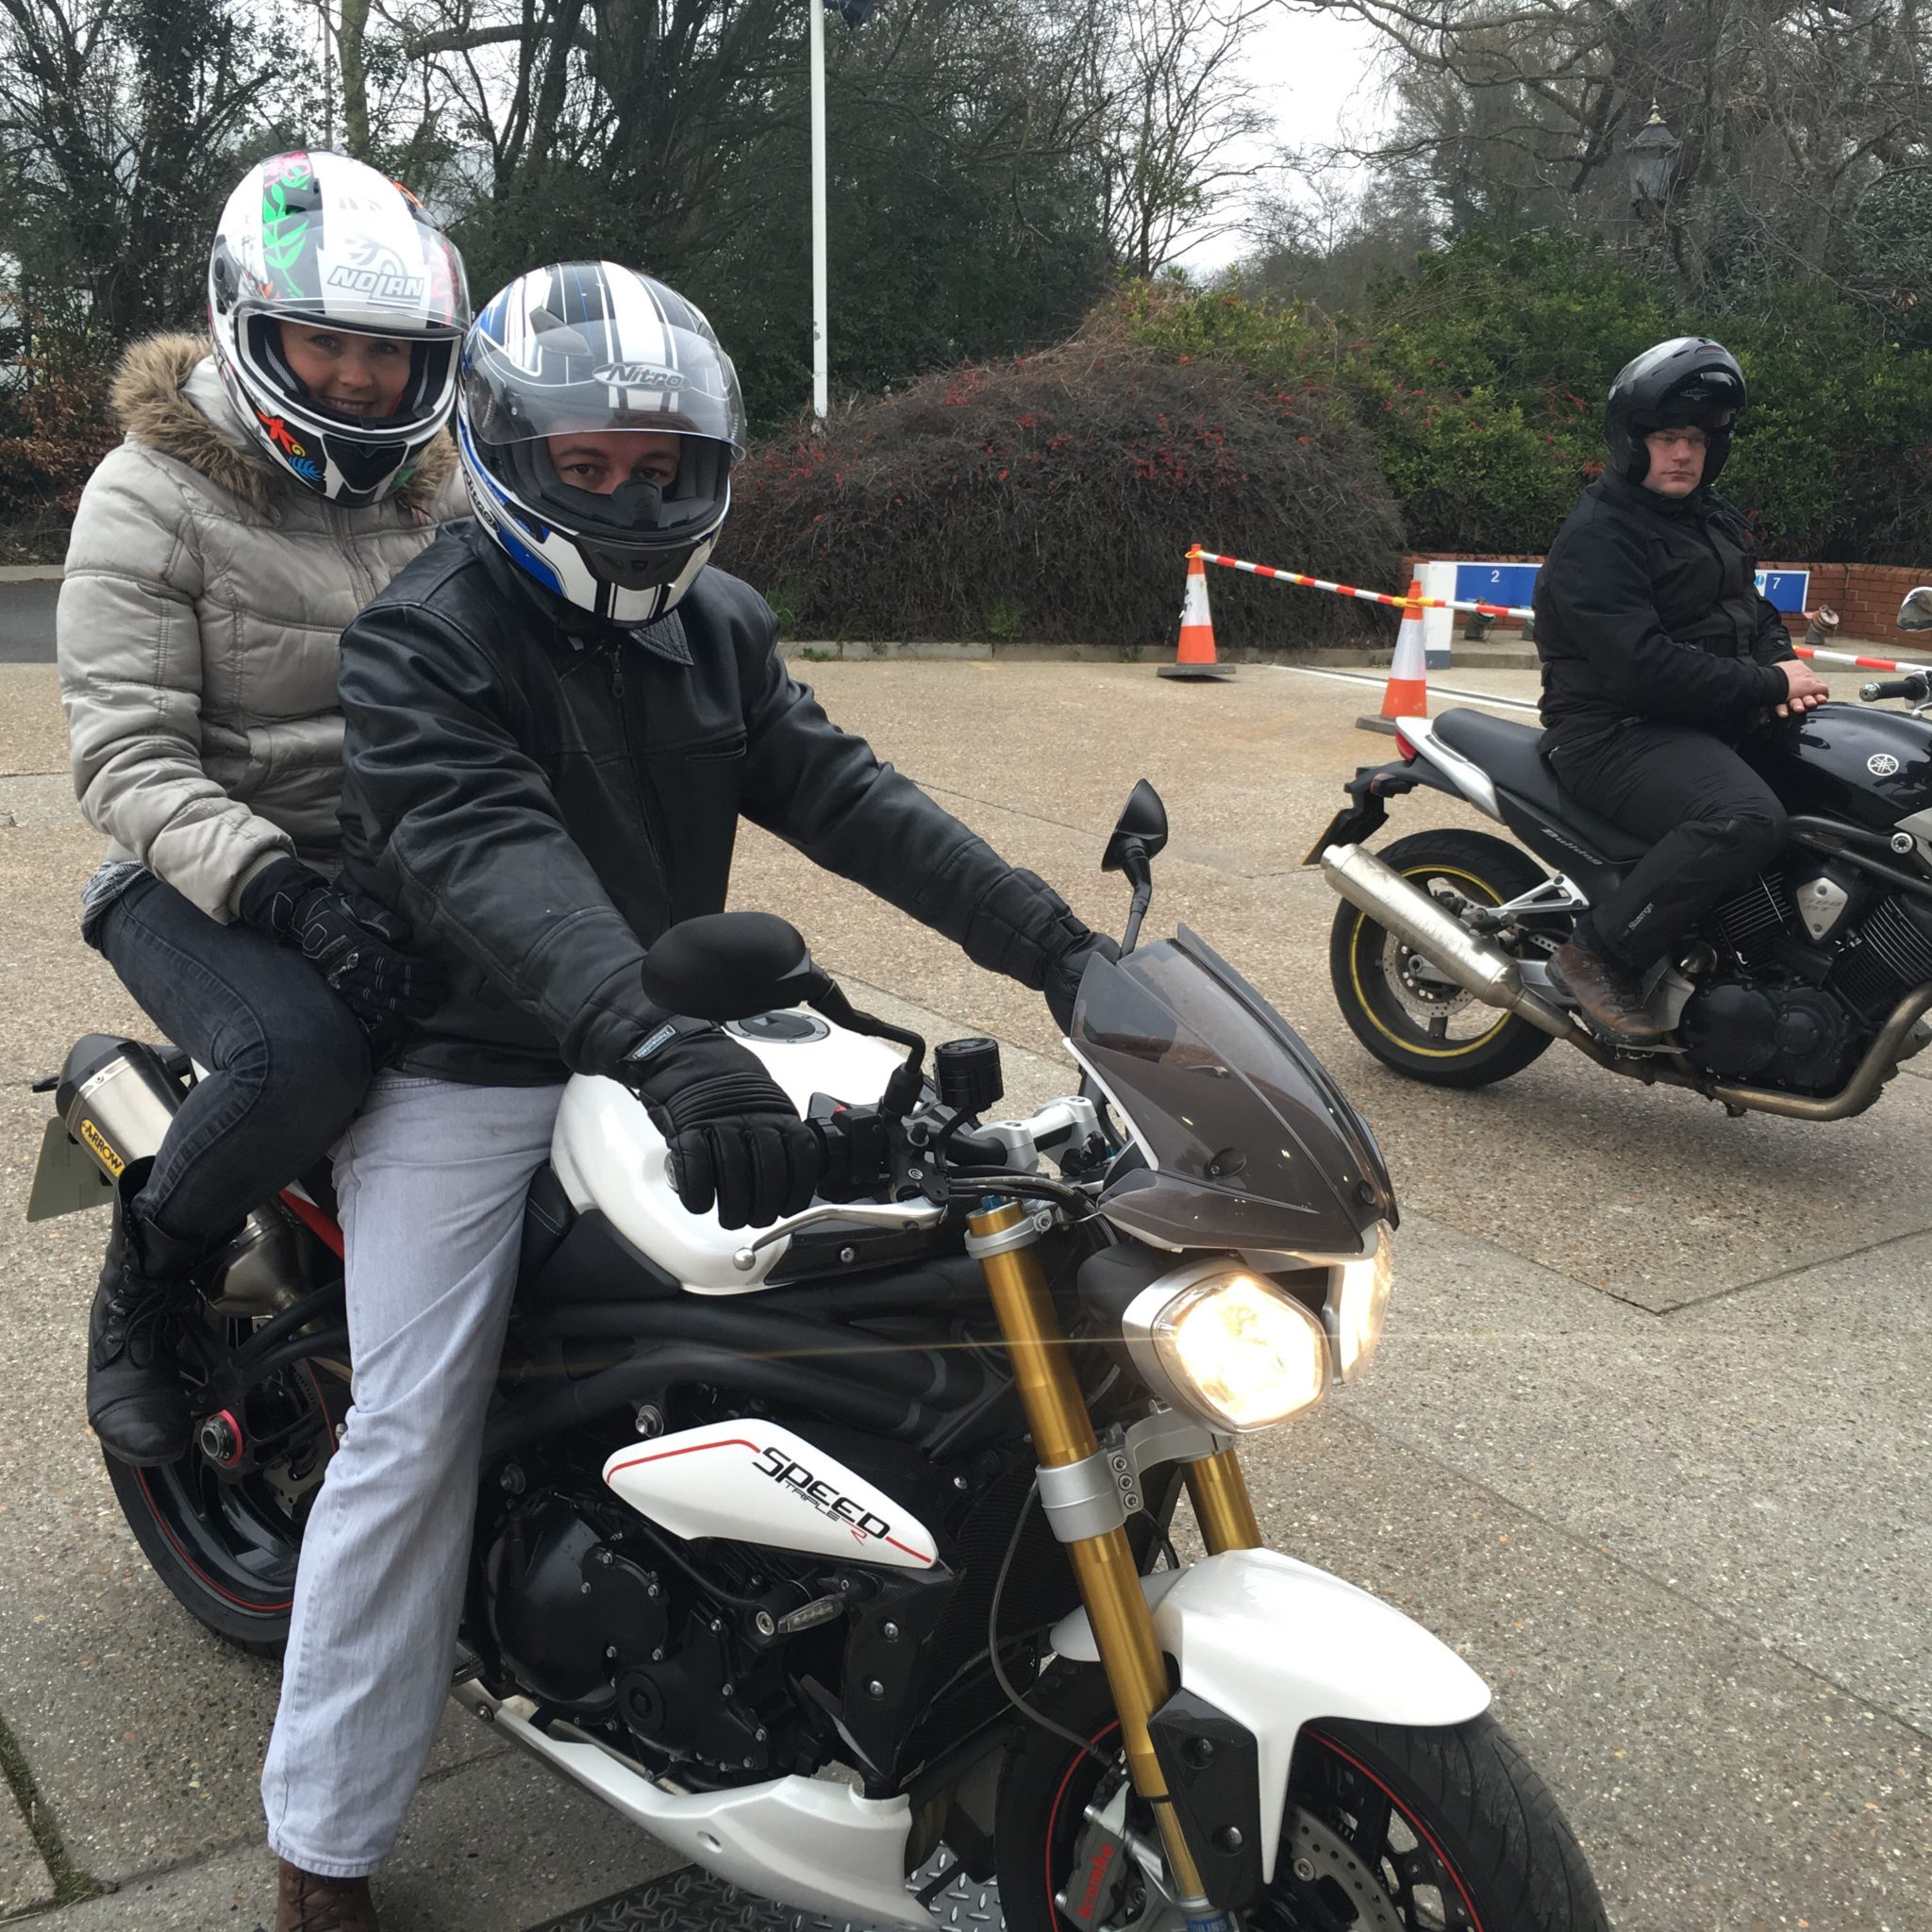 Patrick Morris – Triumph Speed Triple 1050 R 1